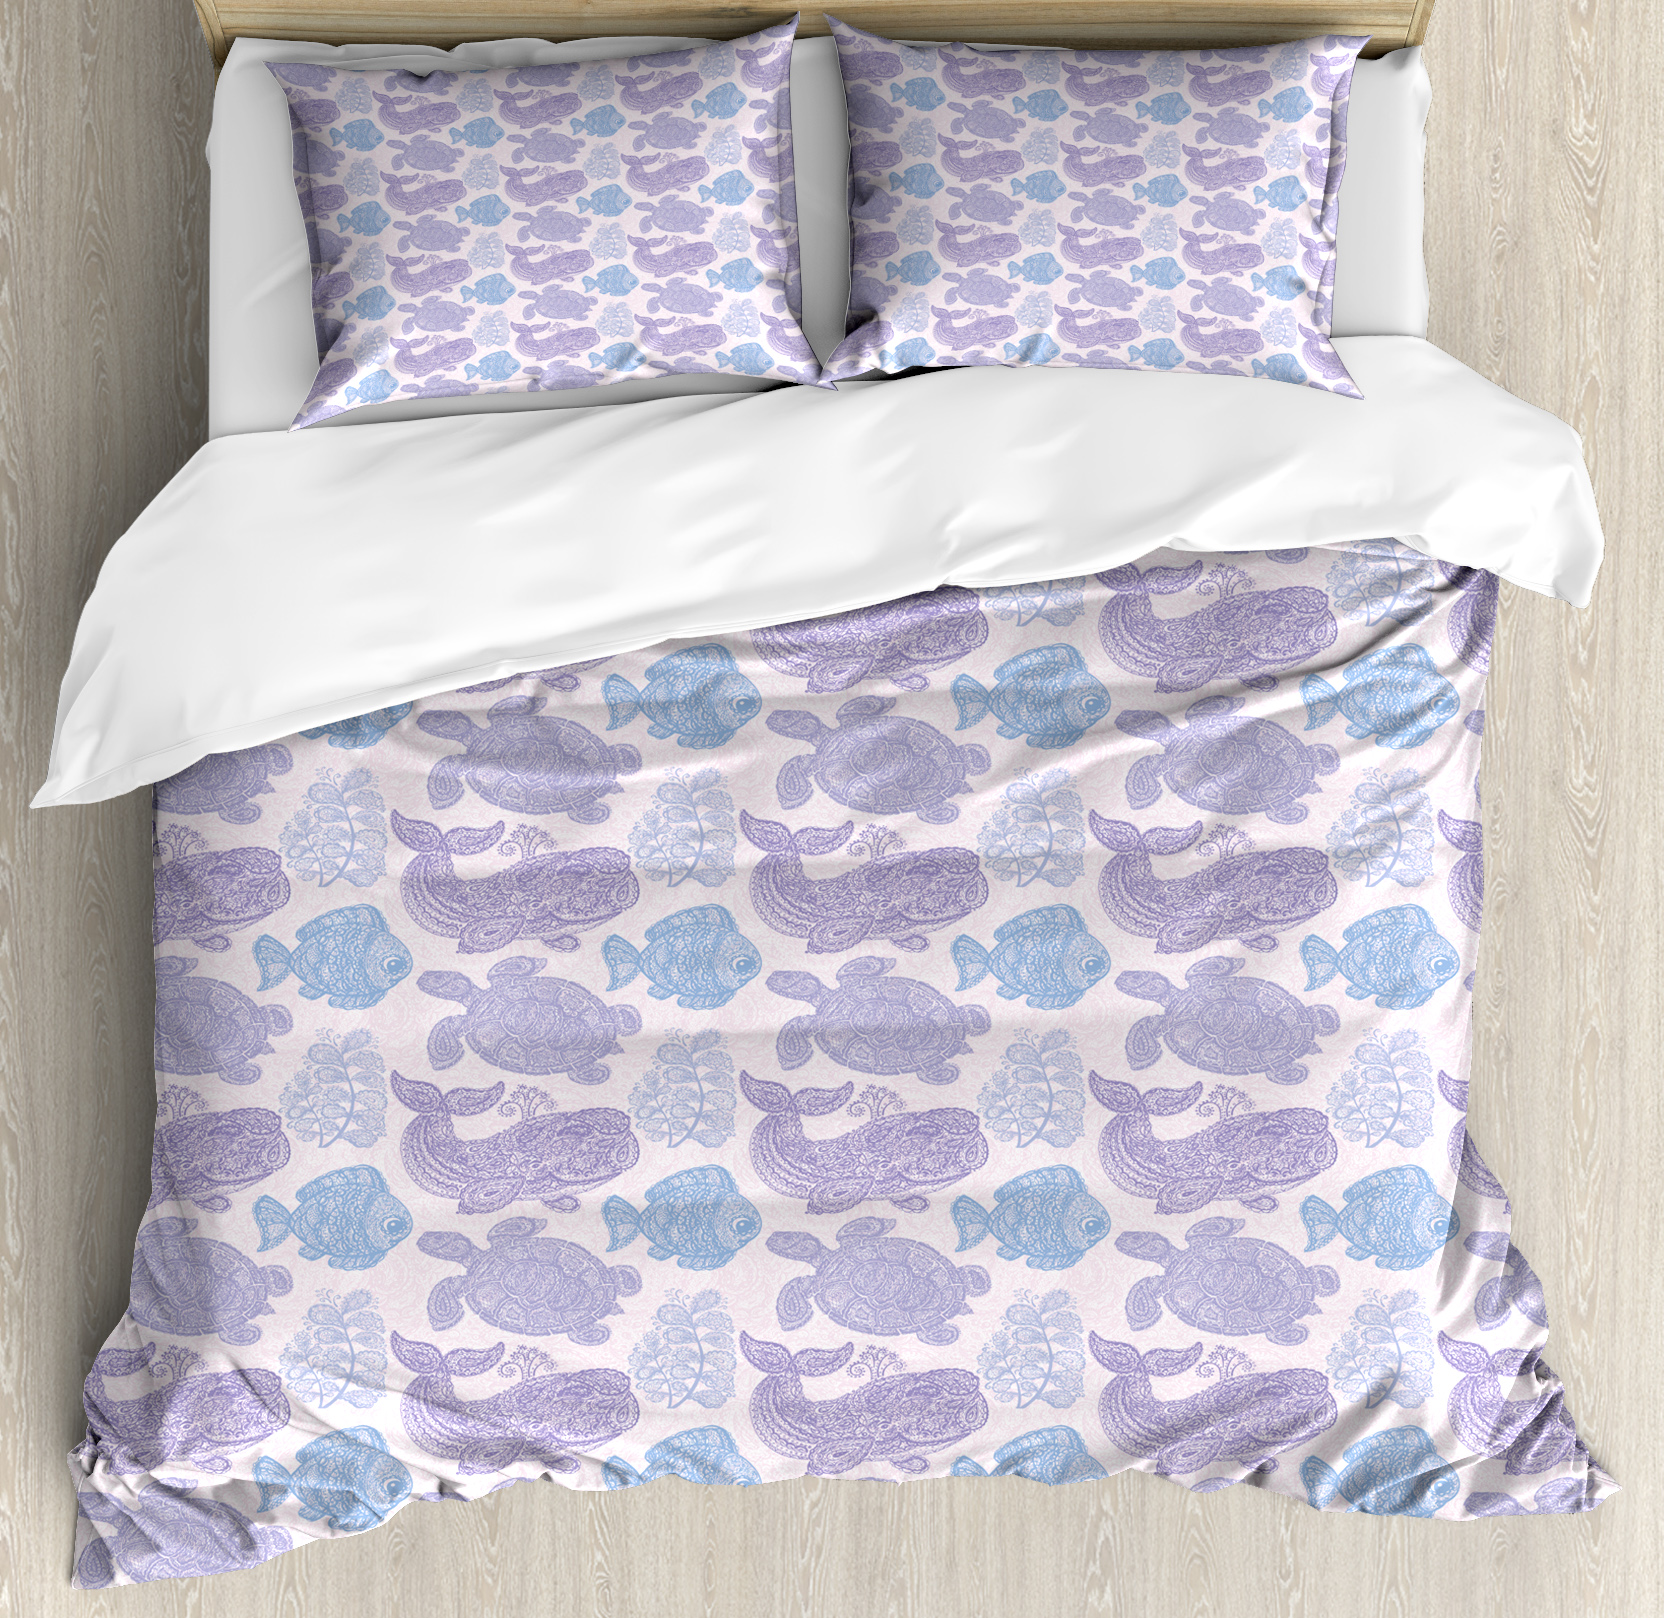 Whale King Size Duvet Cover Set, Sea Turtle Water Plant and Fish in Doodle Style with Paisley Mehndi Motifs, Decorative 3 Piece Bedding Set with 2 Pillow Shams, Purple Pale Pink Blue, by Ambesonne